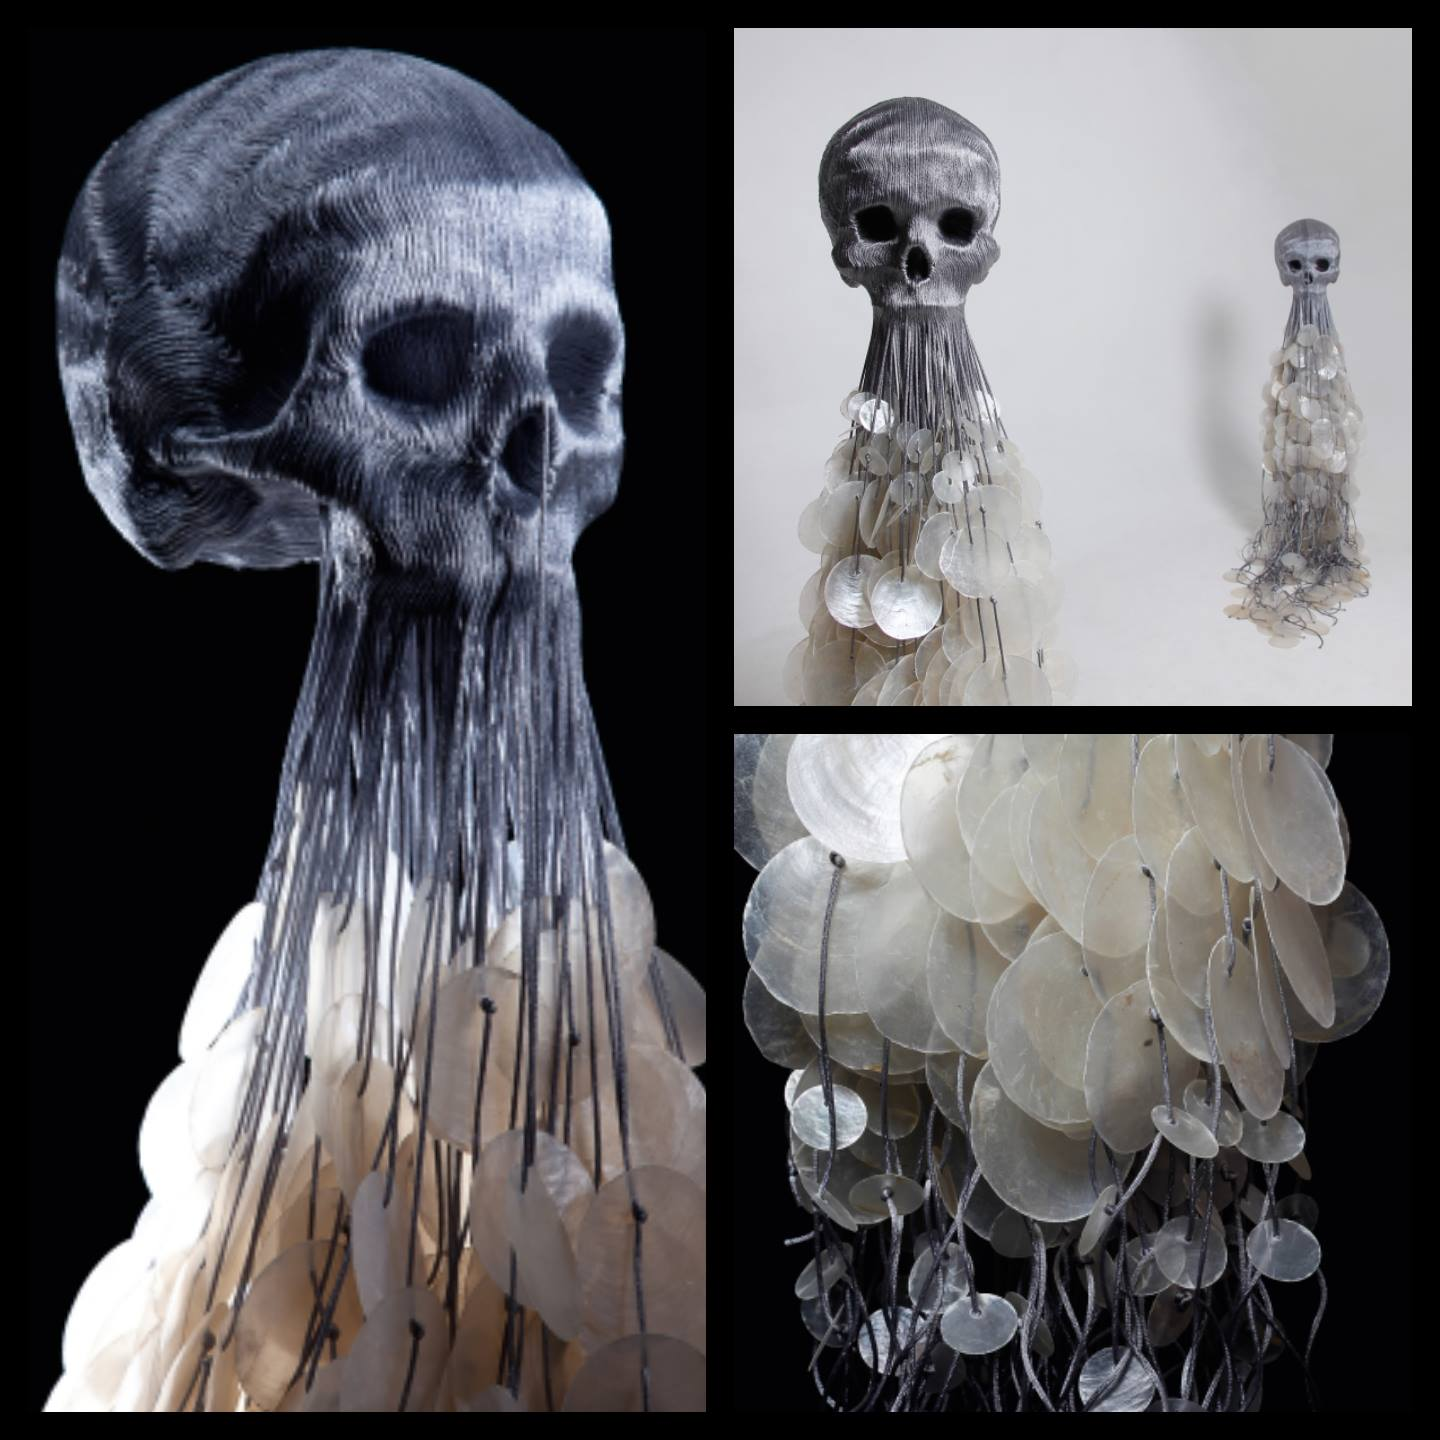 Jim skull – Sculptures